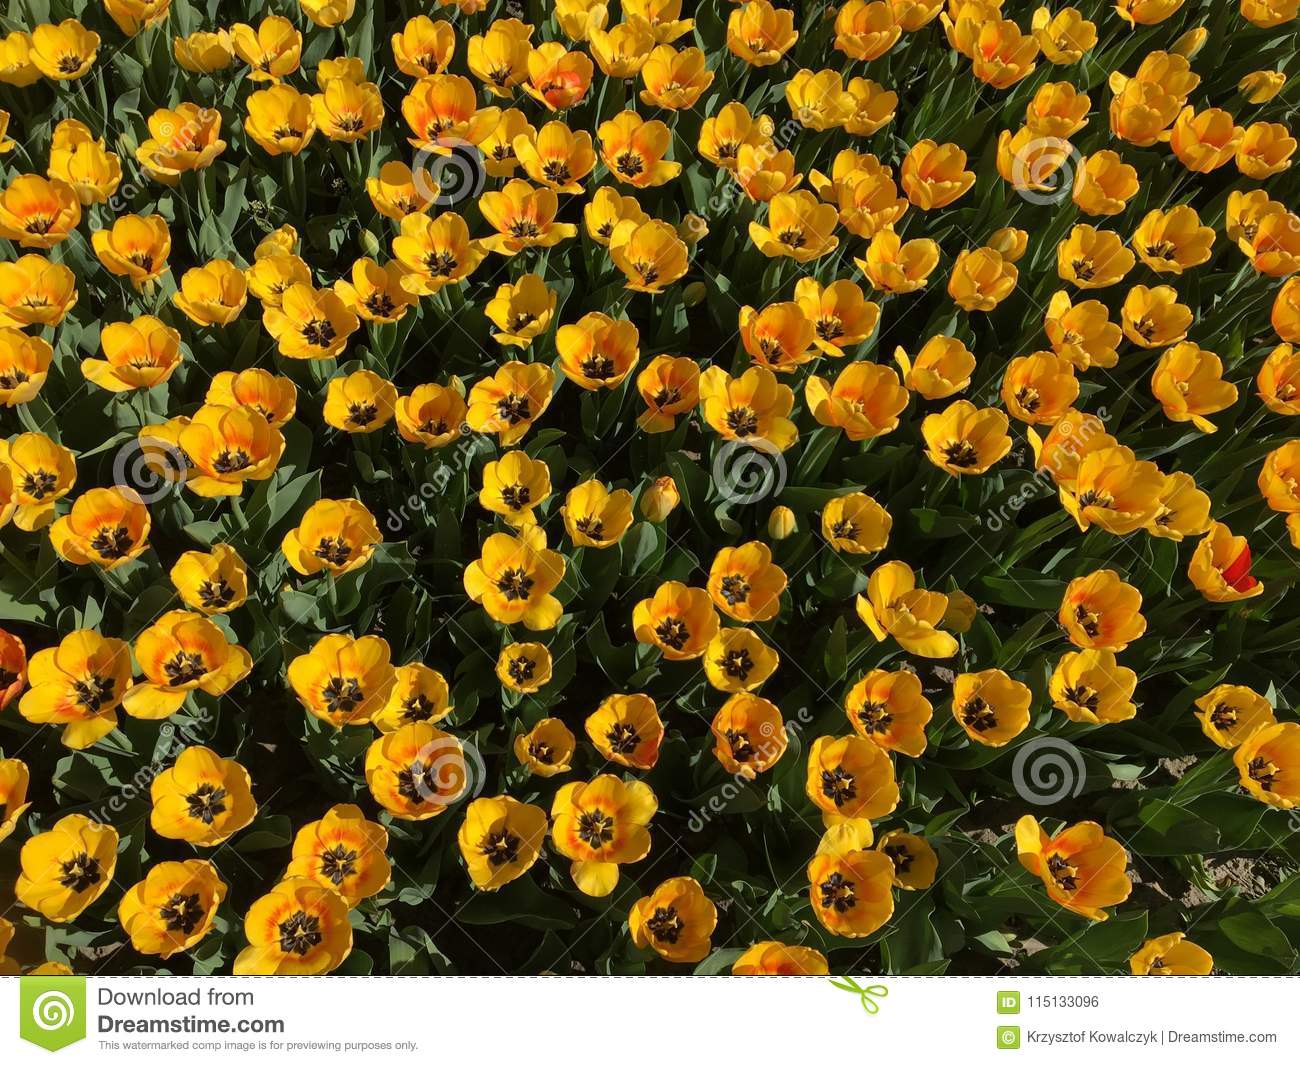 Lots of yellow tulip flowers name beauty of spring stock photo download lots of yellow tulip flowers name beauty of spring stock photo image mightylinksfo